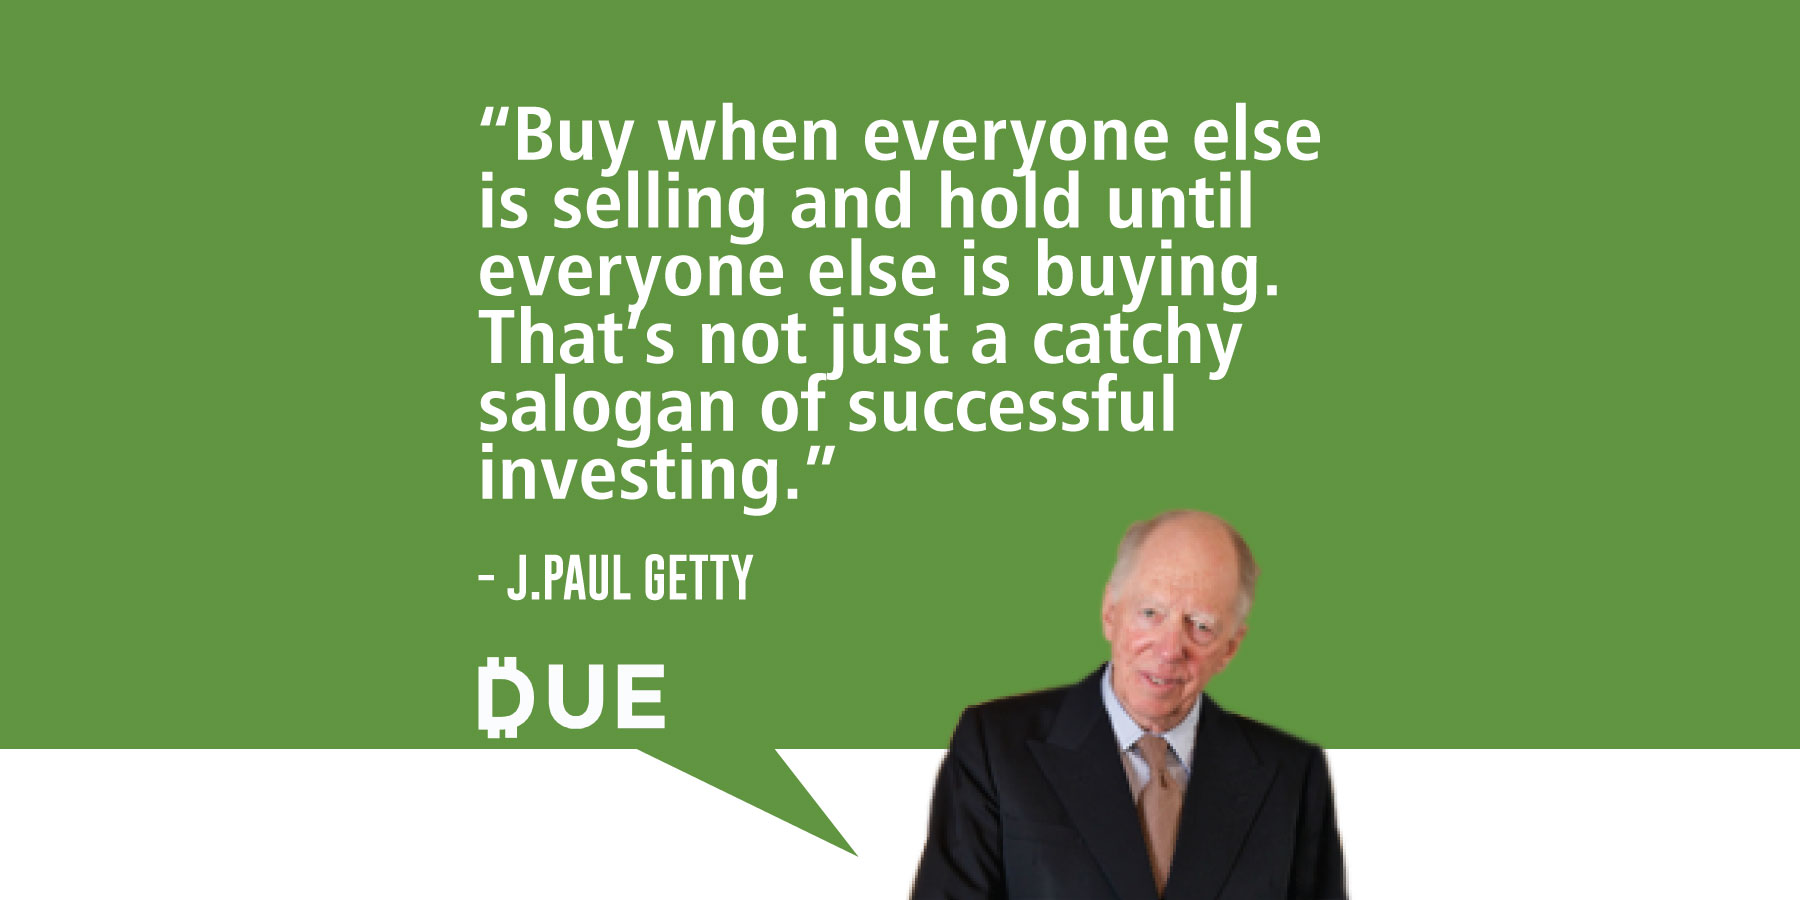 J Paul Getty Quote - Catchy Slogan and Successful Investing